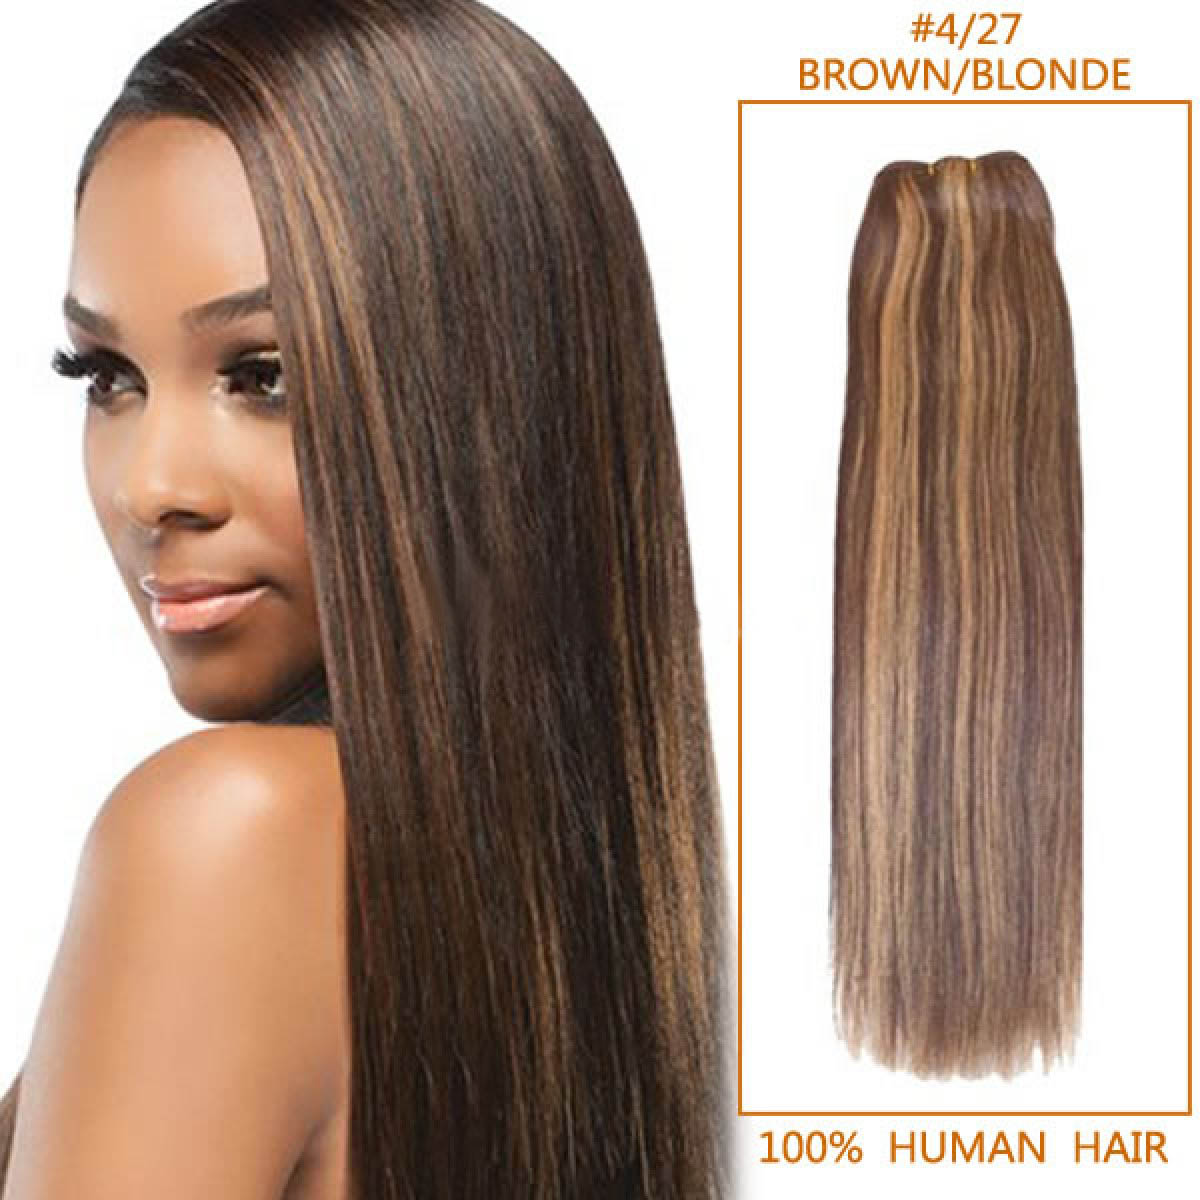 32 Inch 427 Brownblonde Straight Indian Remy Hair Wefts